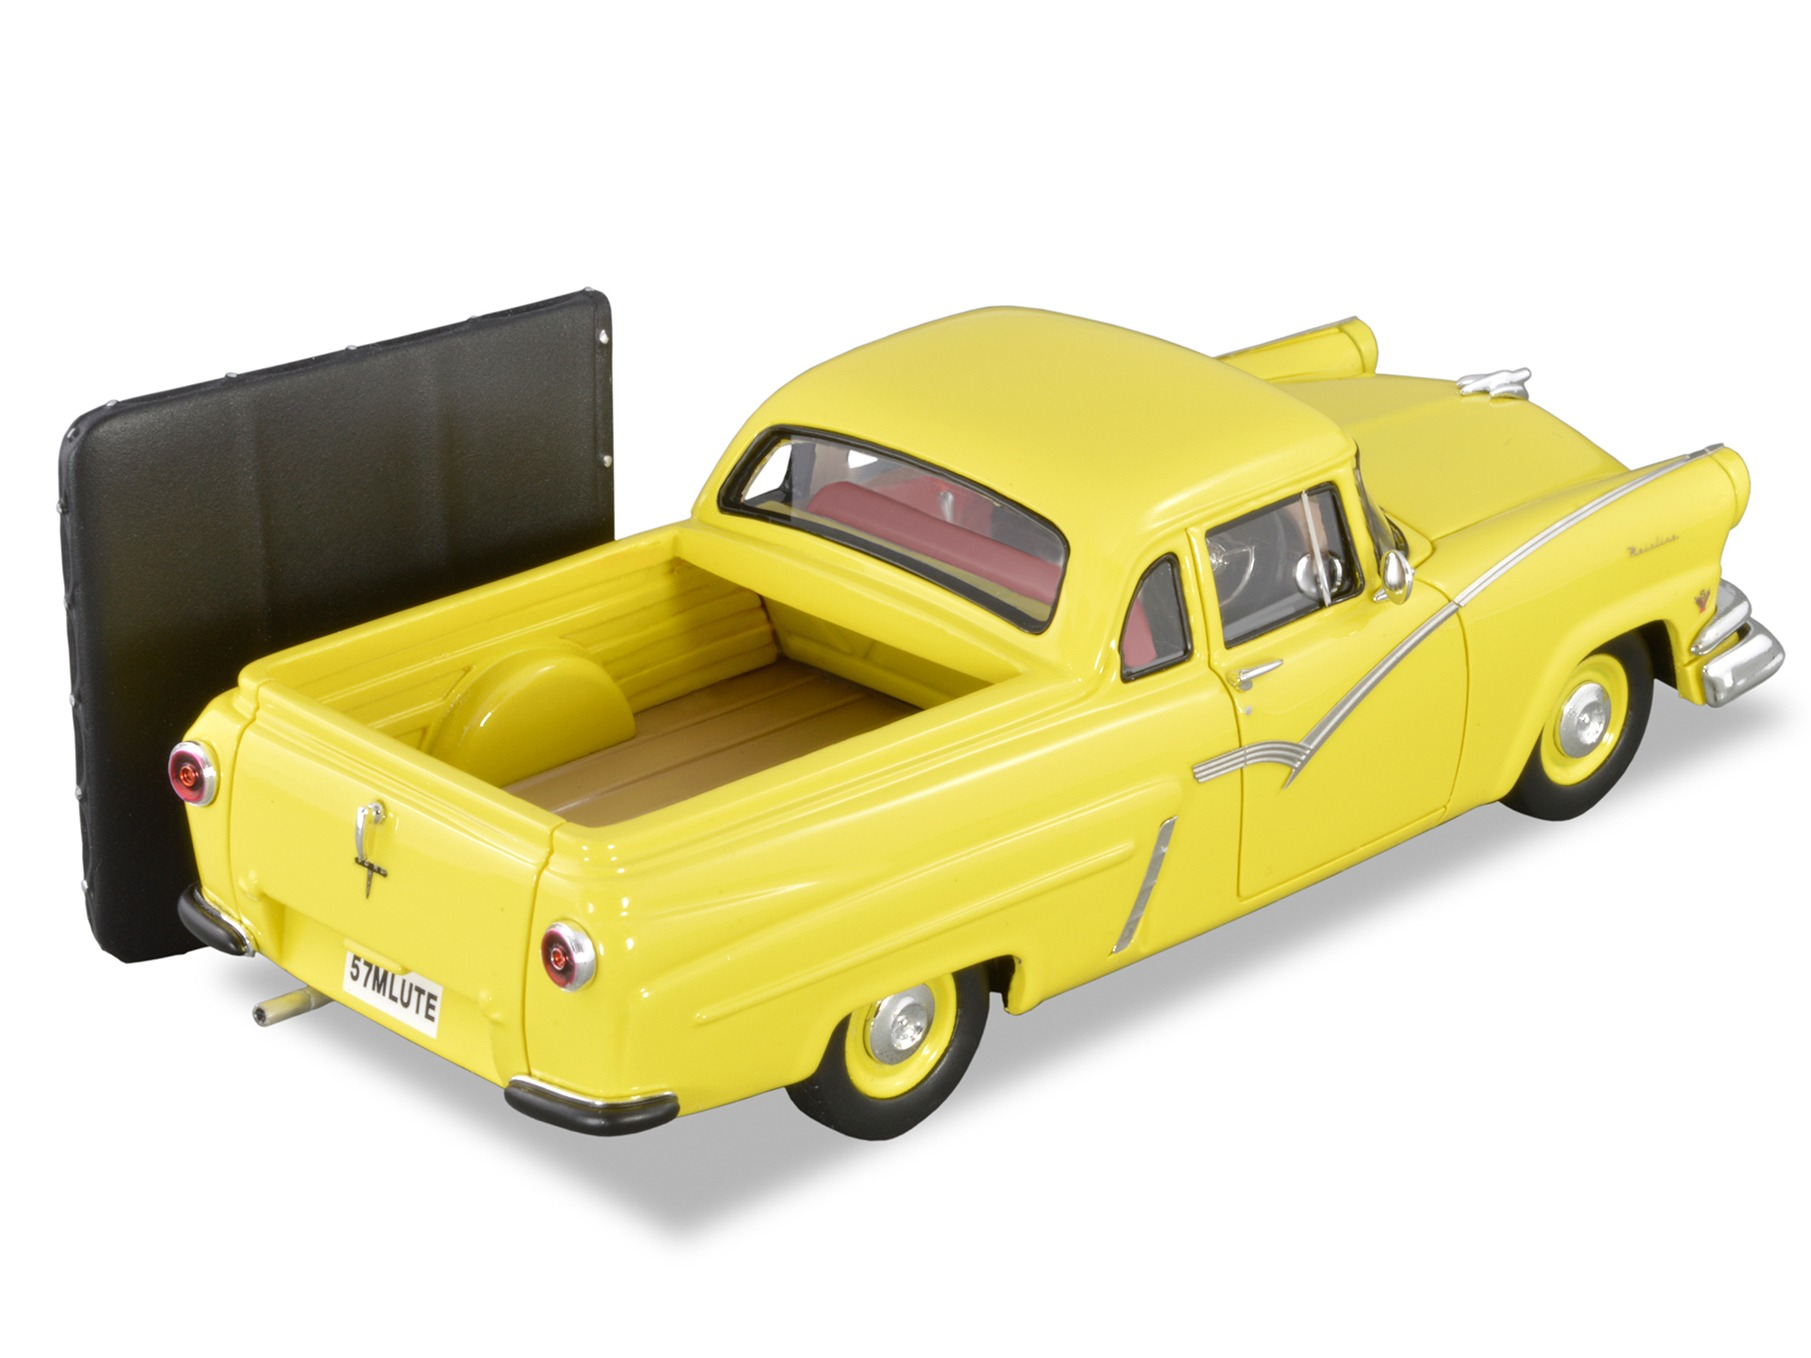 1957 Ford Mainline Ute – Yellow